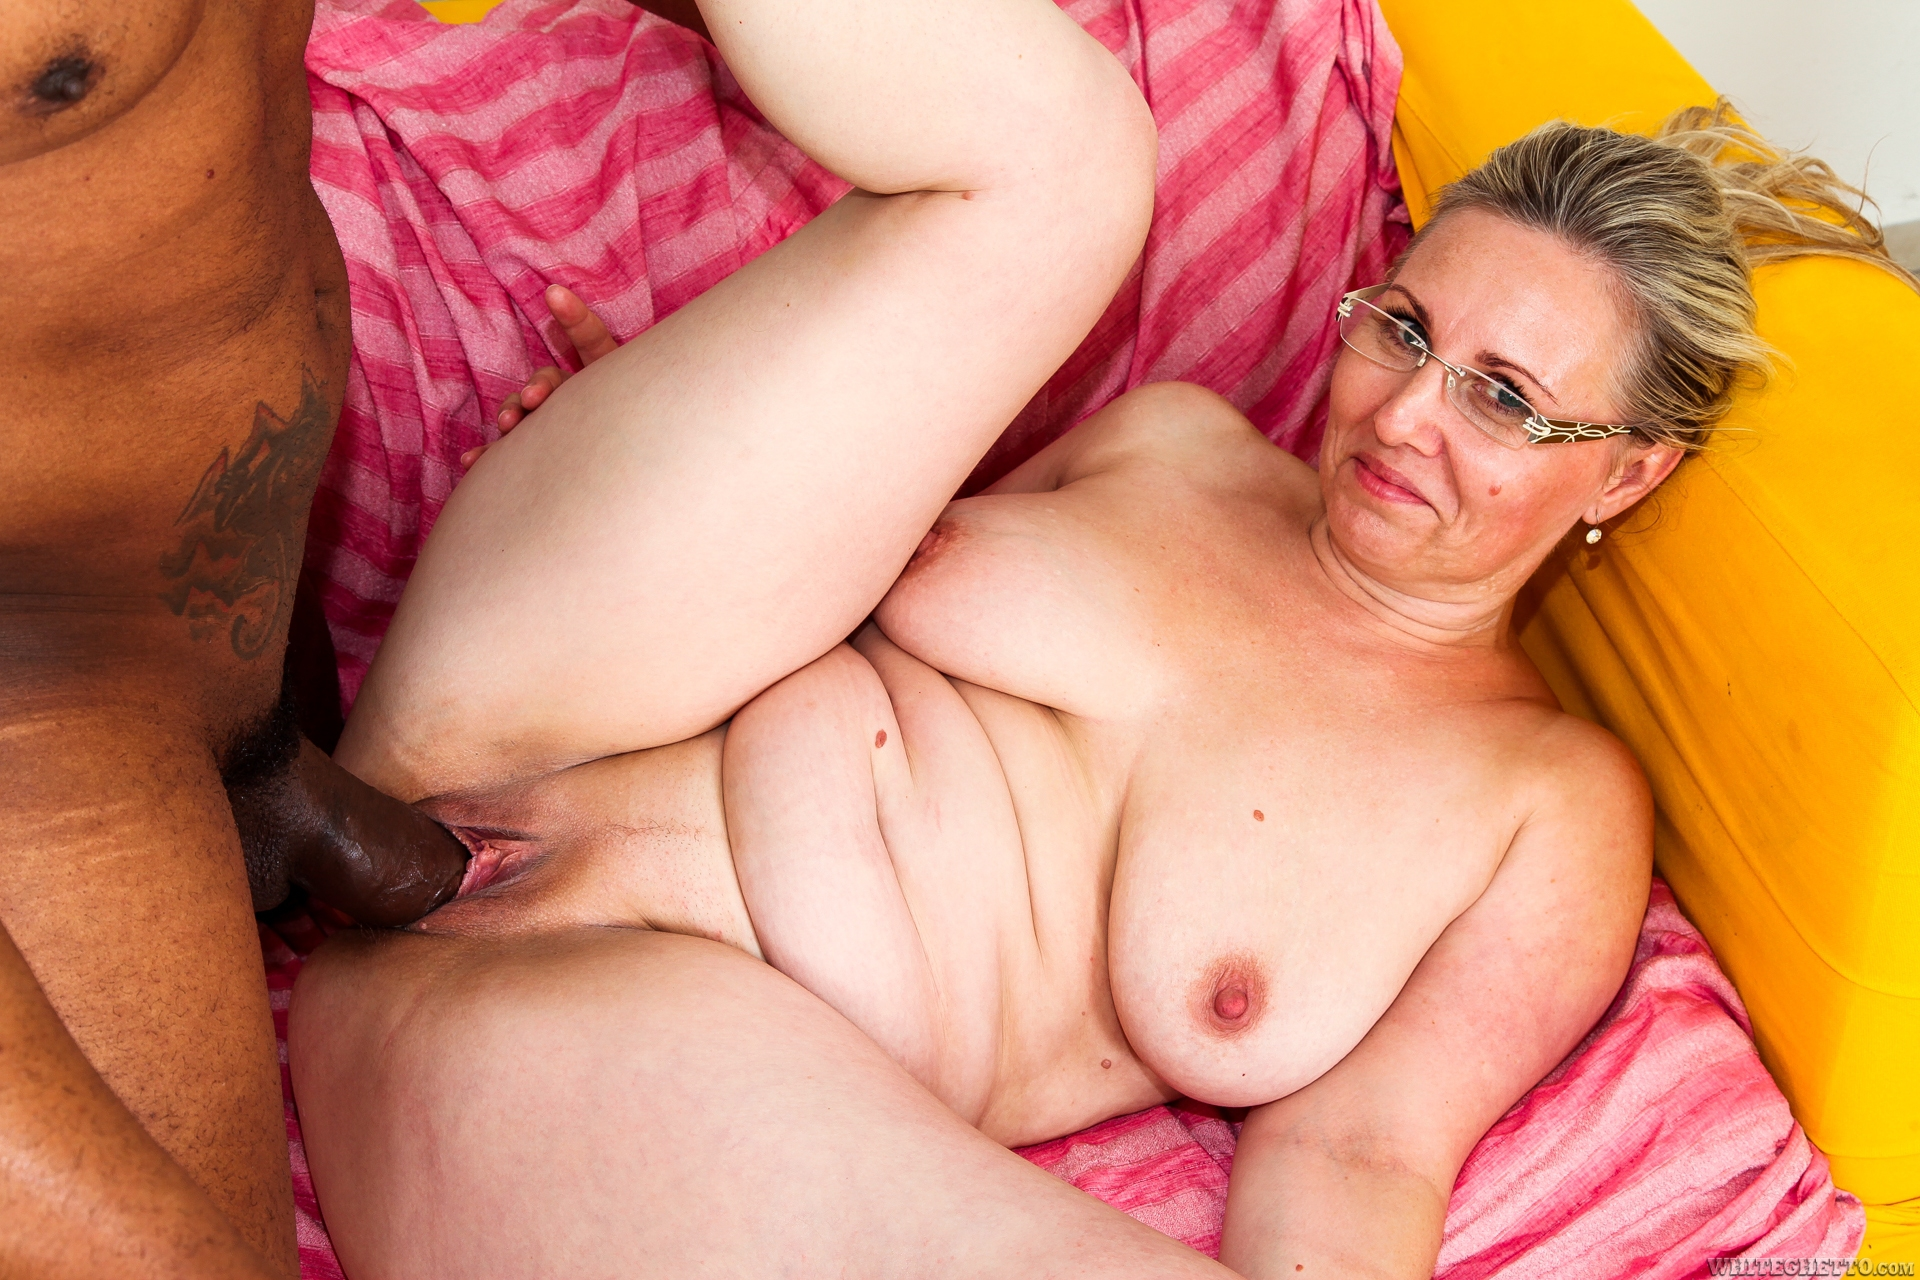 Nude topless pictures of women